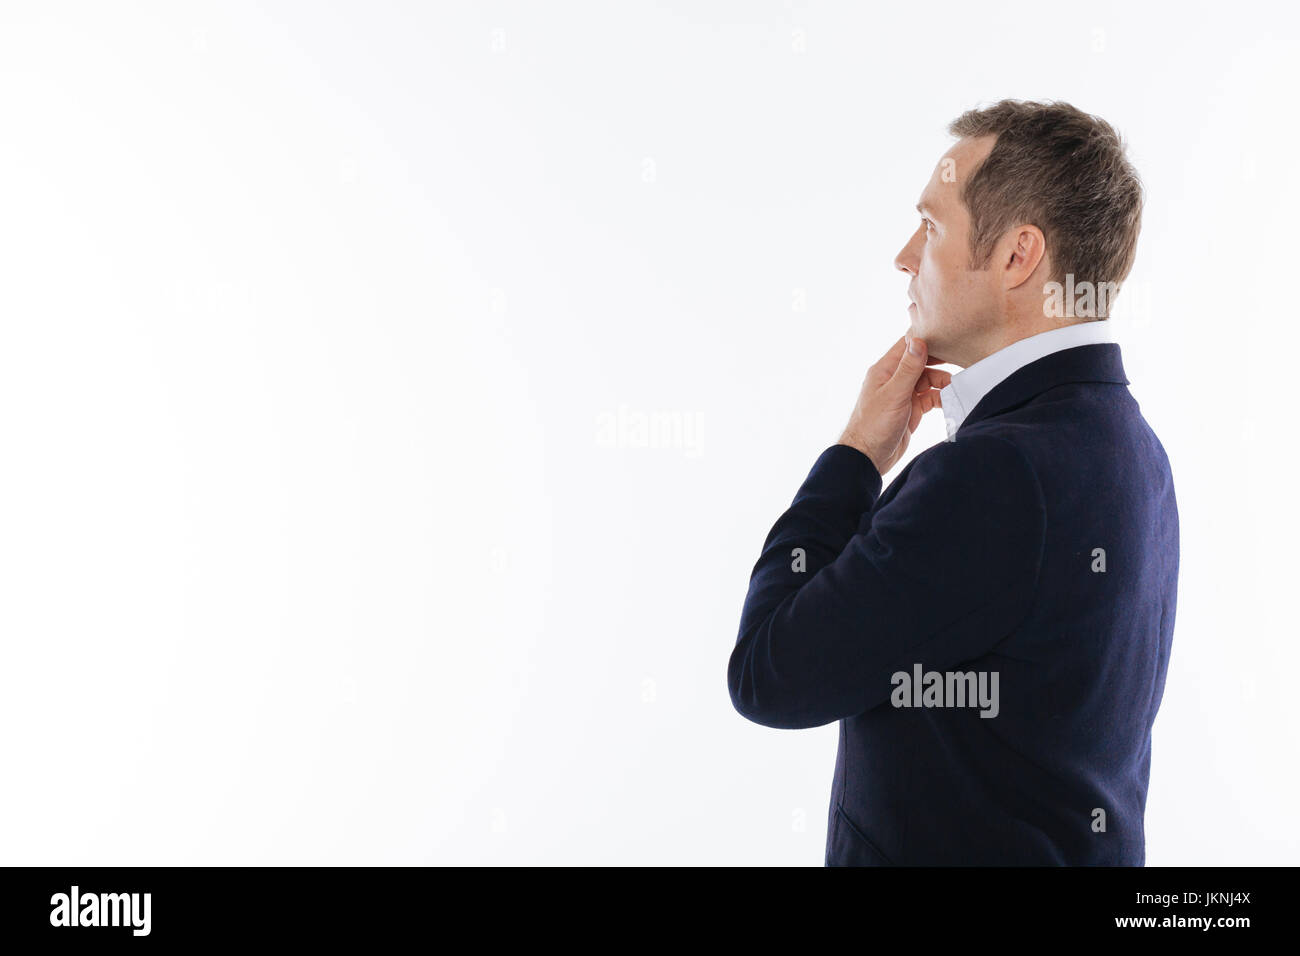 Charming intelligent gentleman acting during the photoshoot - Stock Image